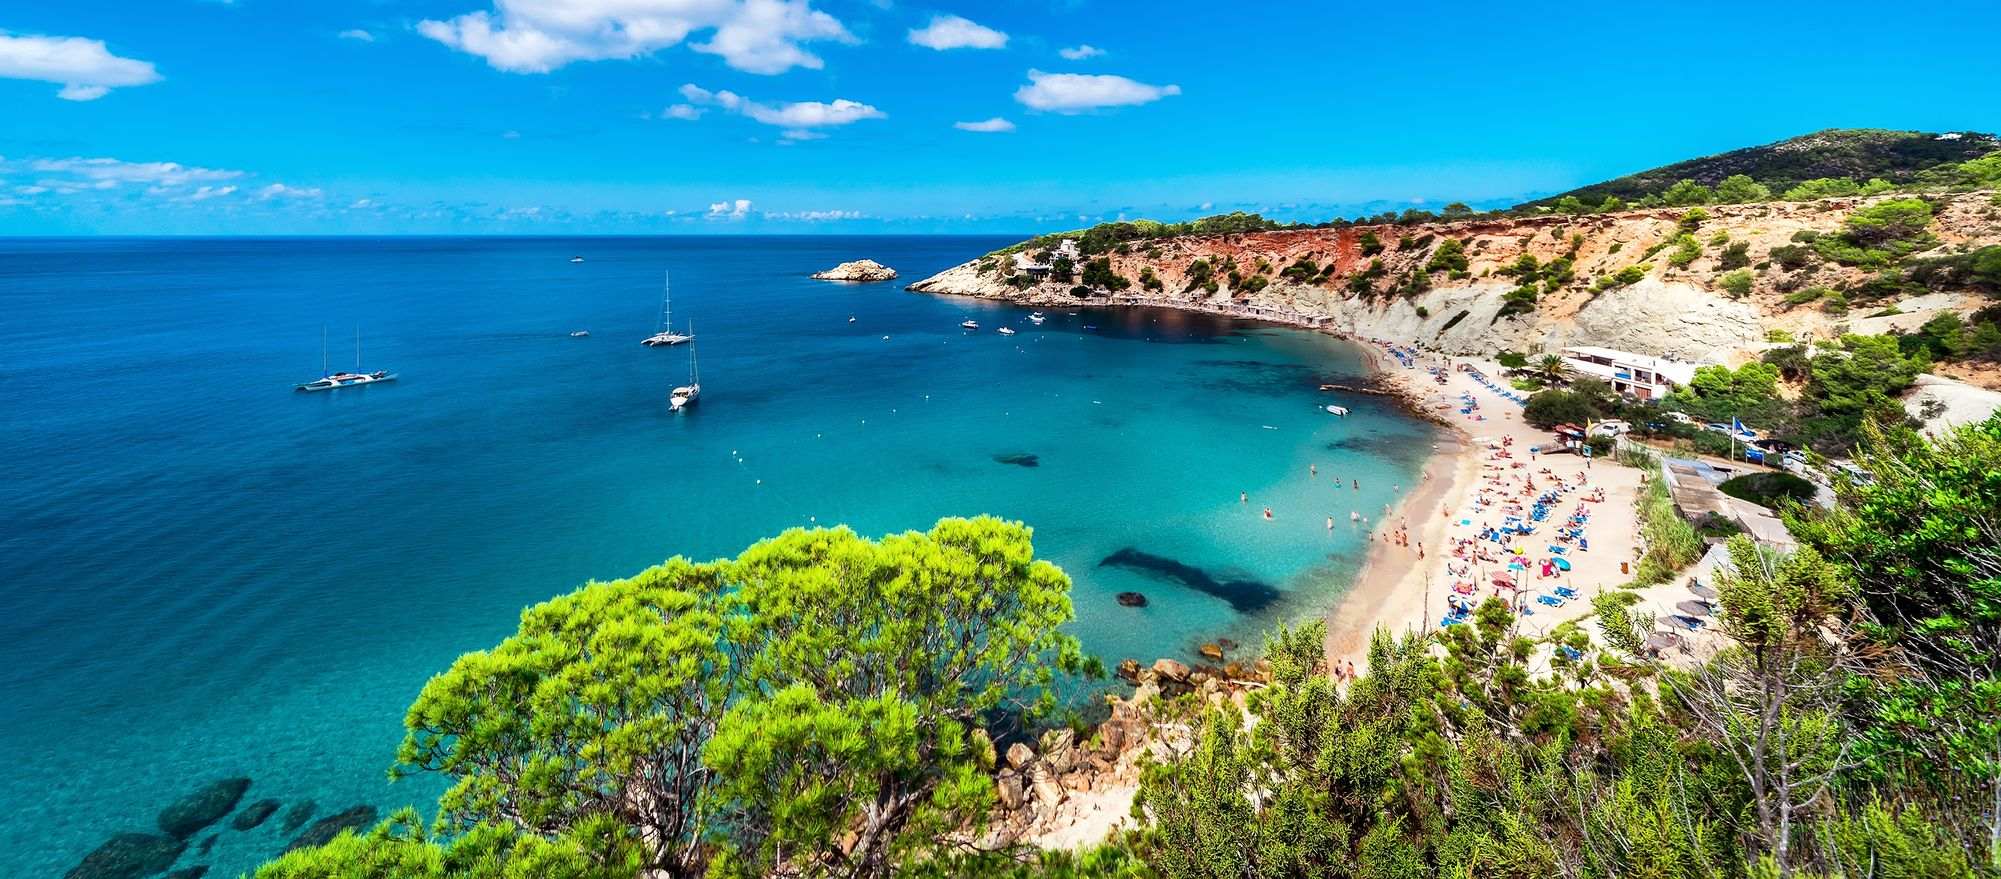 Beach in Ibiza - 17 unmissable places in the Balearic Islands